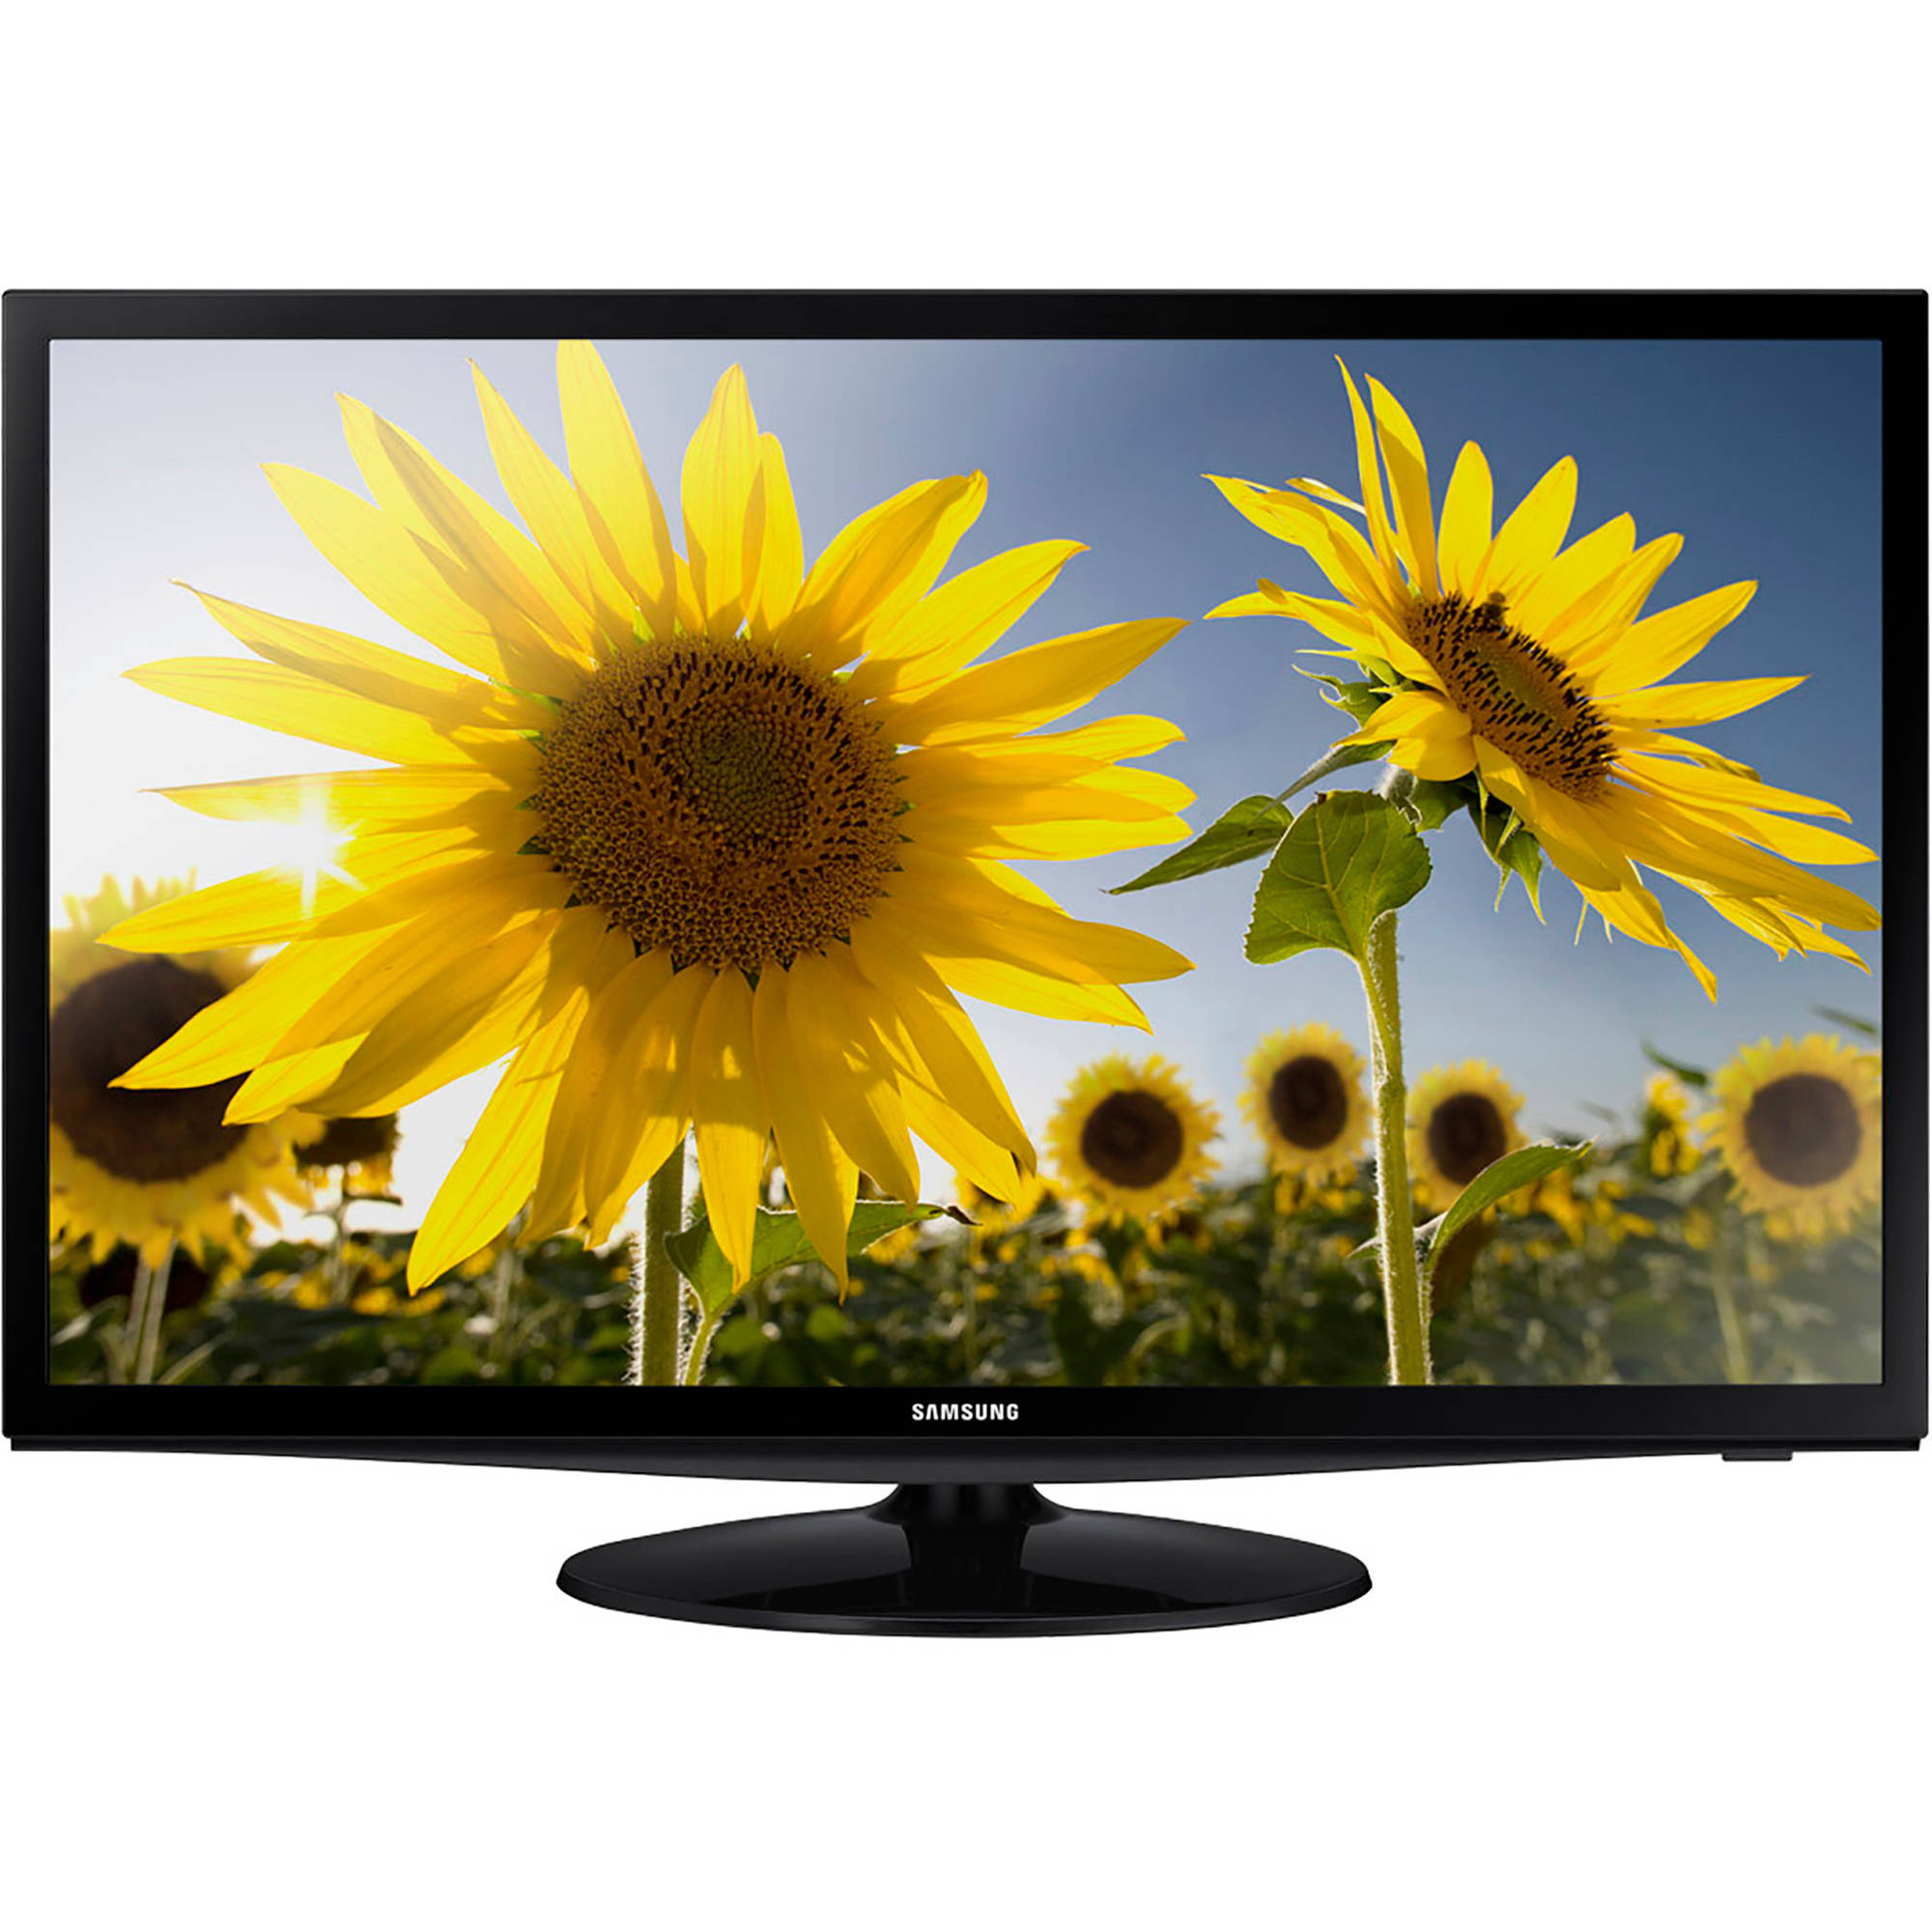 "SAMSUNG 28"" 4000 Series - HD LED TV - 720p, 60MR (Model#: UN28H4000)"